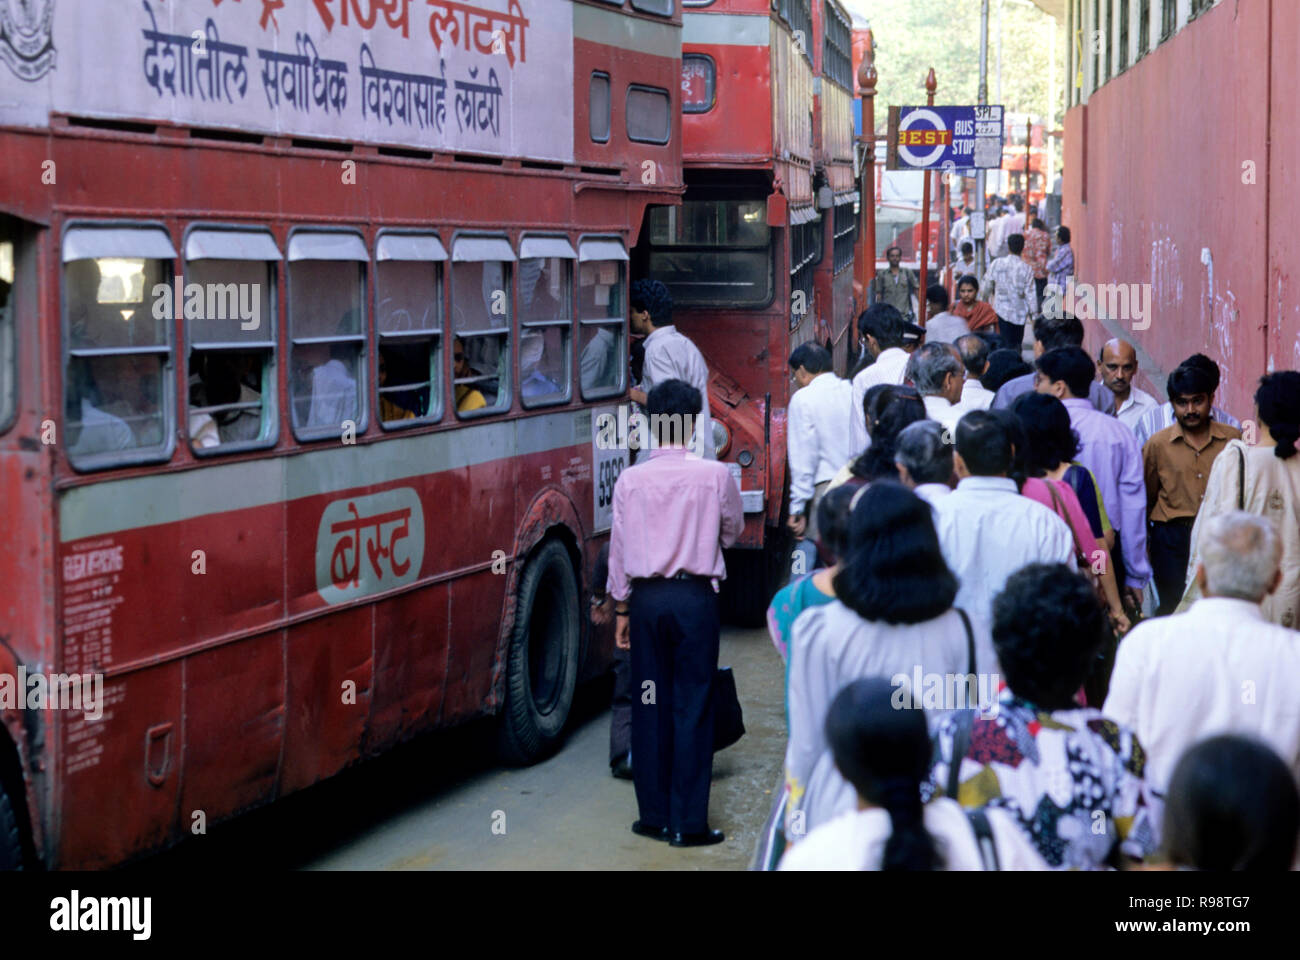 Passengers boarding in bus, bus stop at churchgate, bombay mumbai, Maharashtra, india - Stock Image